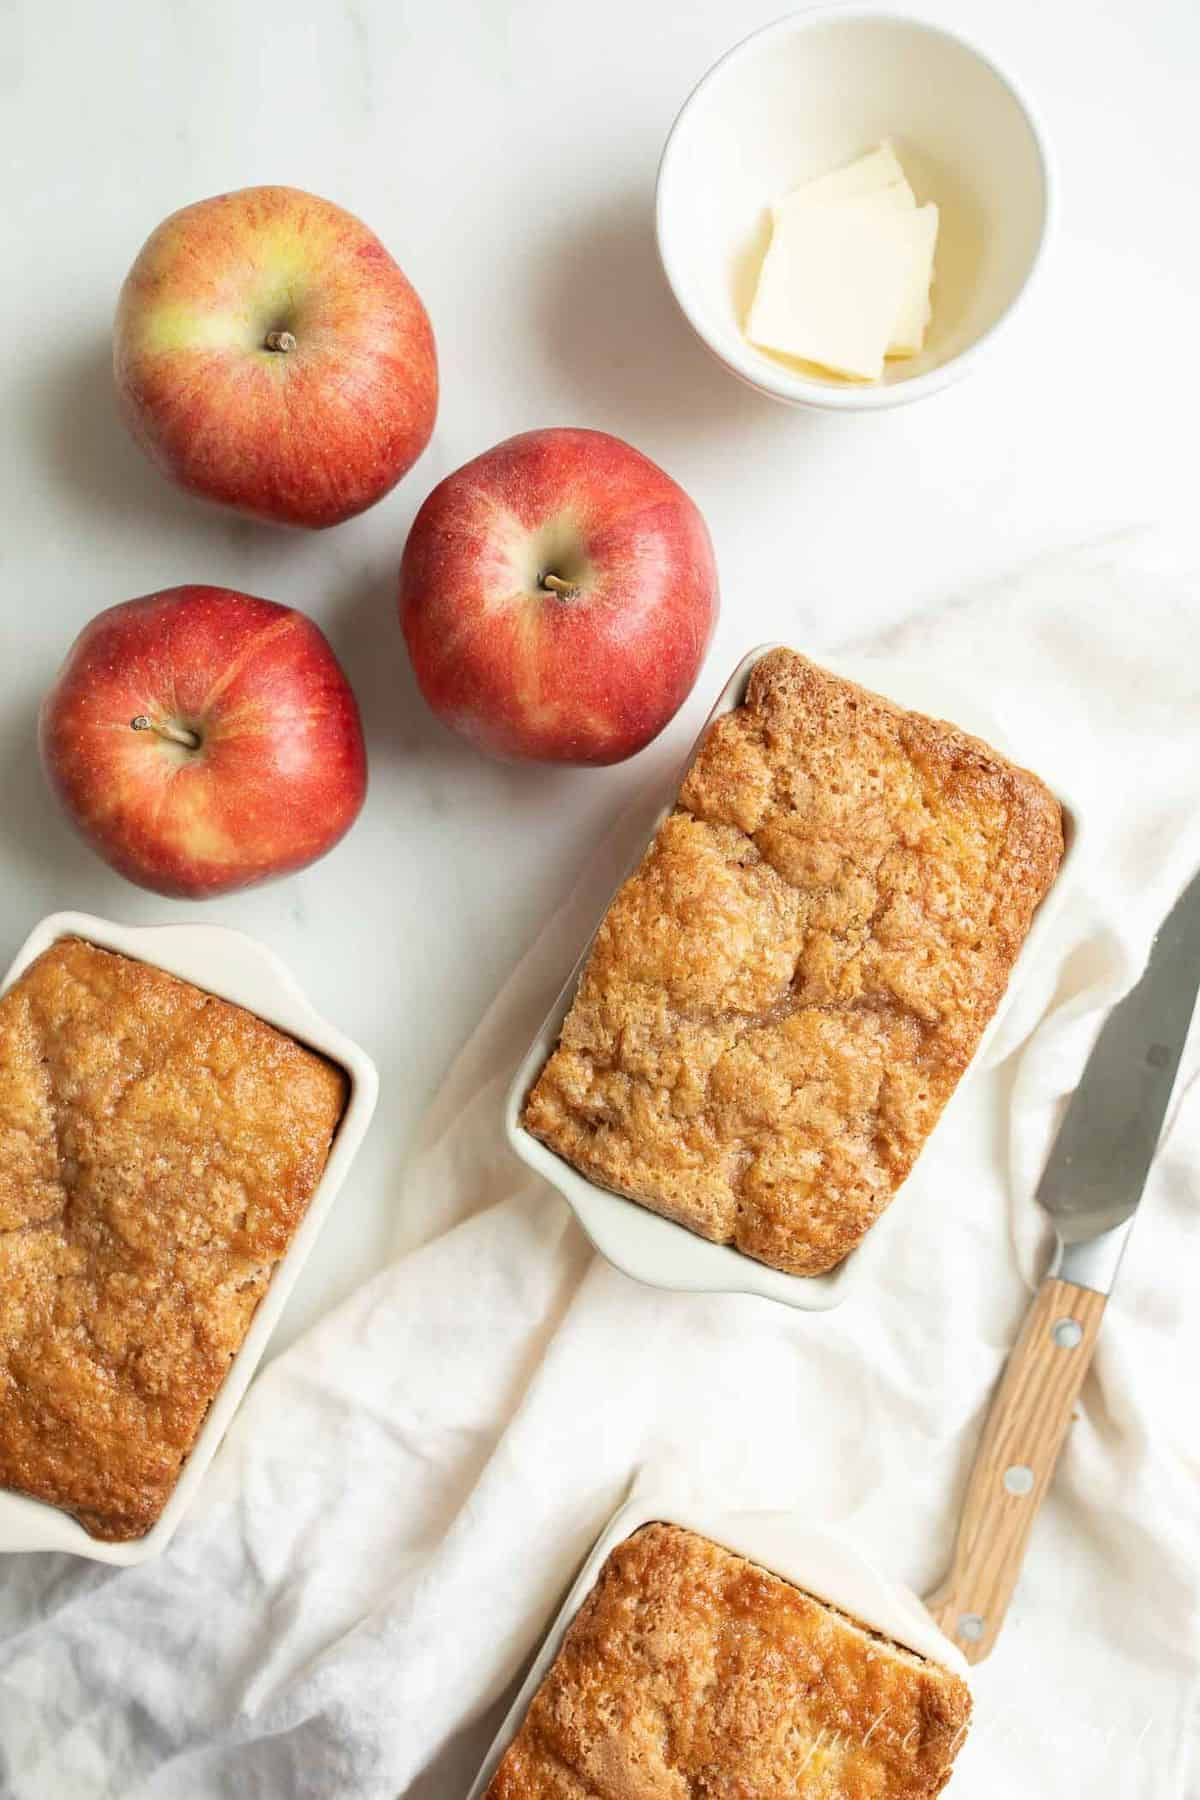 White surface with a few apples and miniature loaves of apple cinnamon quick bread.